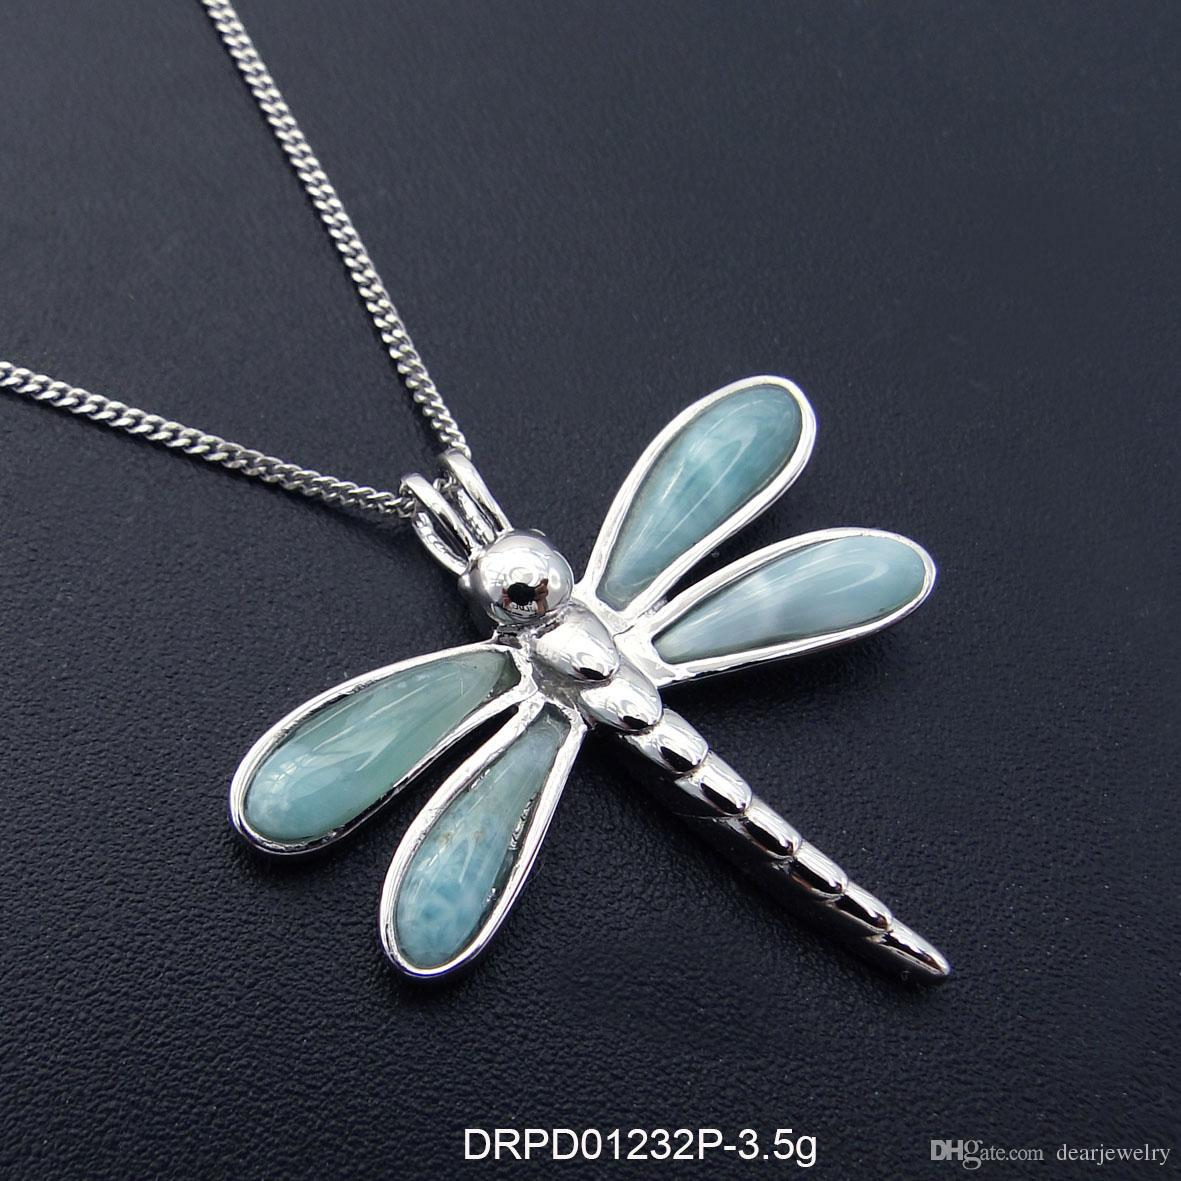 Fashion jewelry 925 silver Larimar Pendant gift Rhodium Plated DRPD01232P Free Shipping